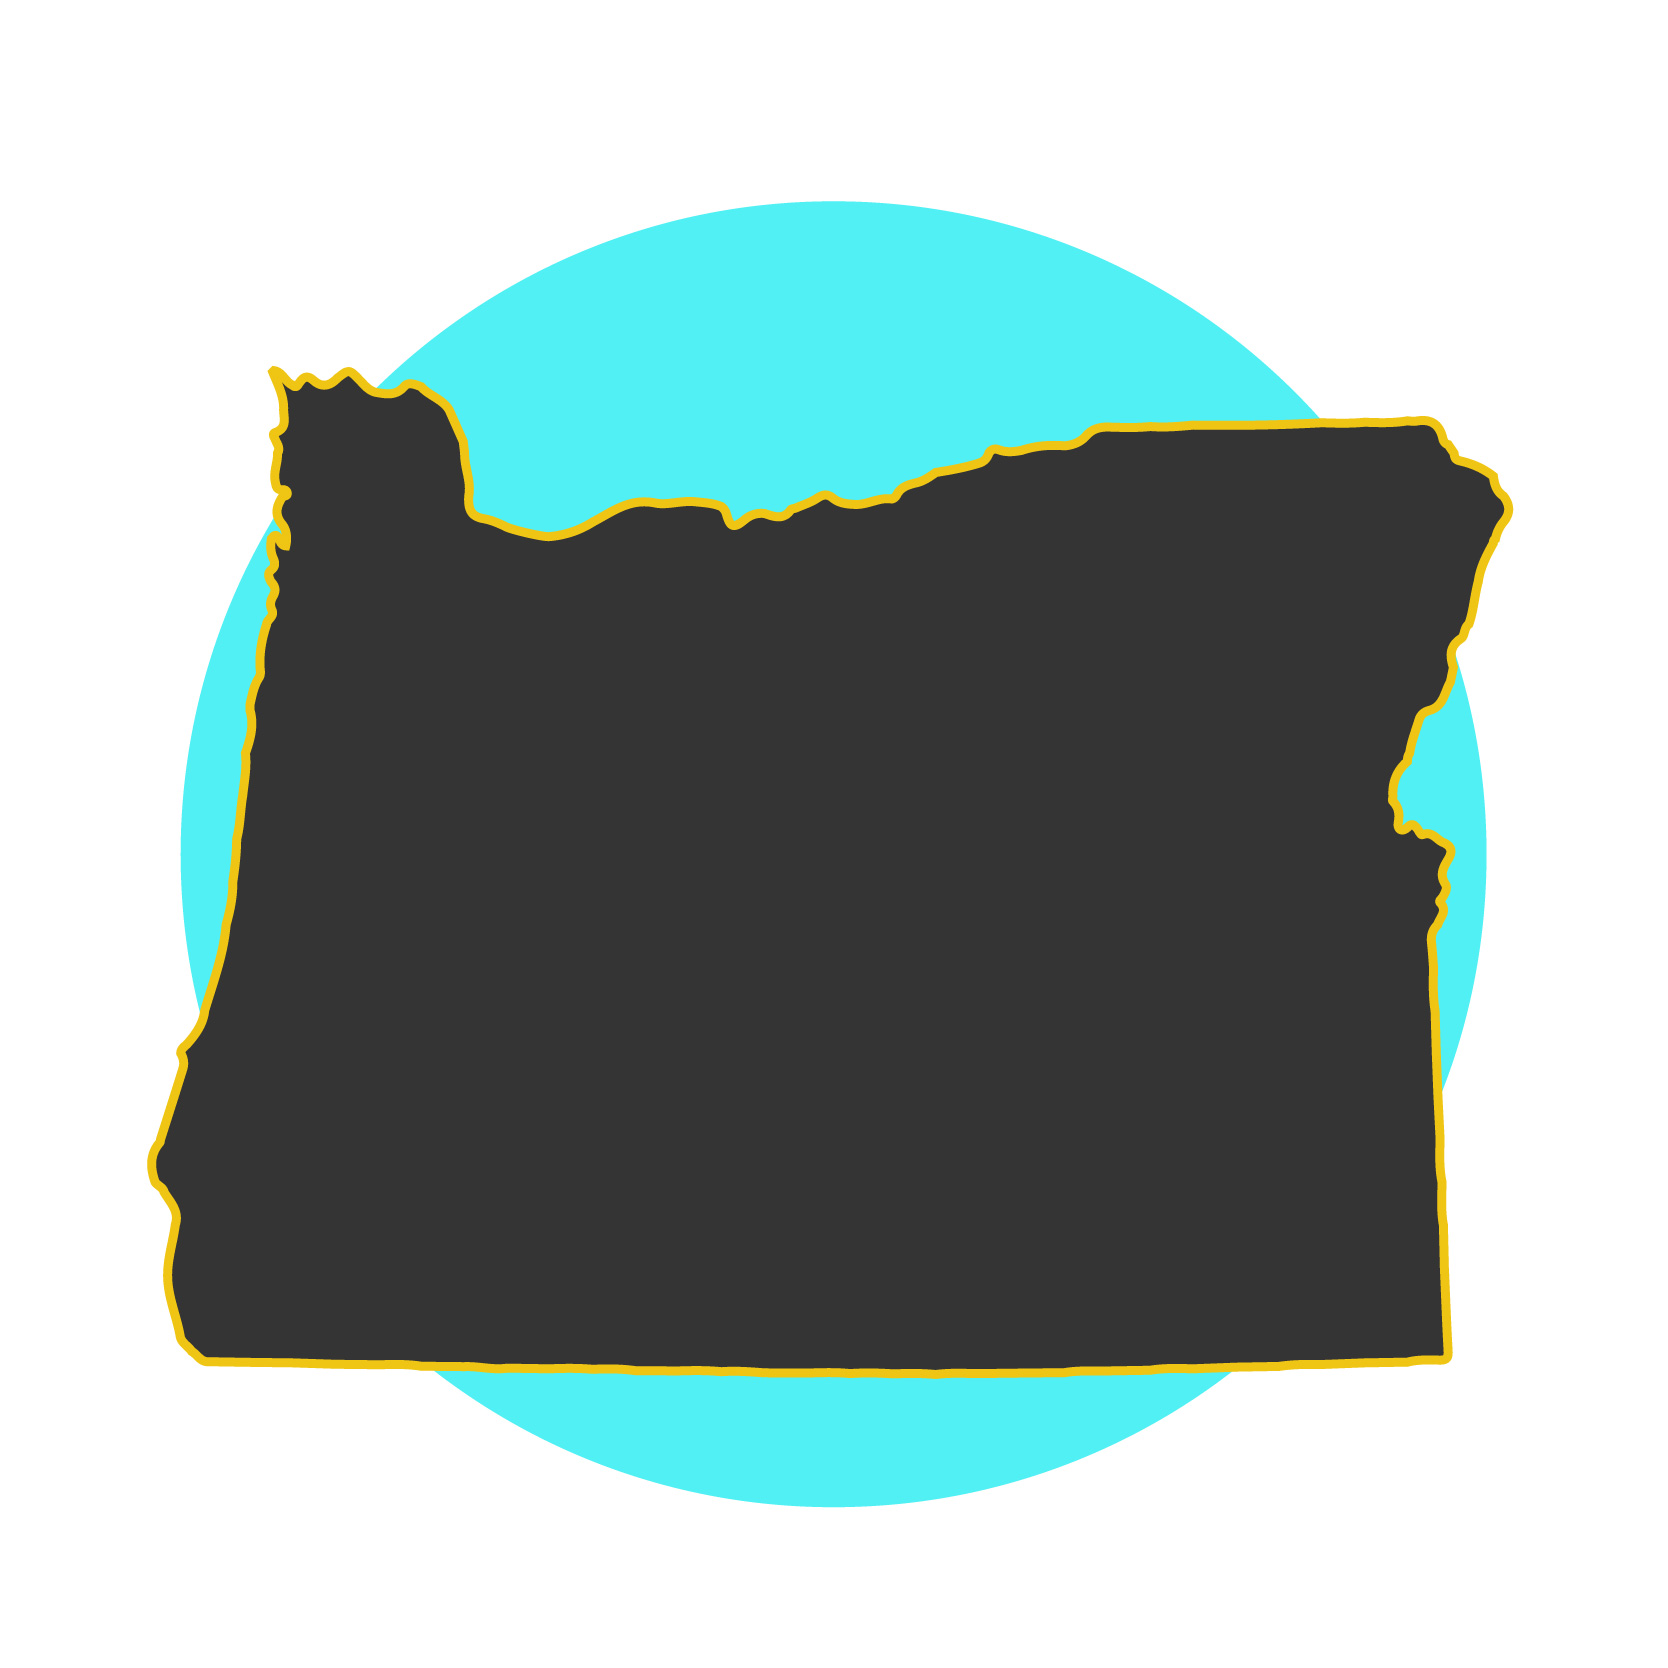 Oregon Digital Fundraising School State